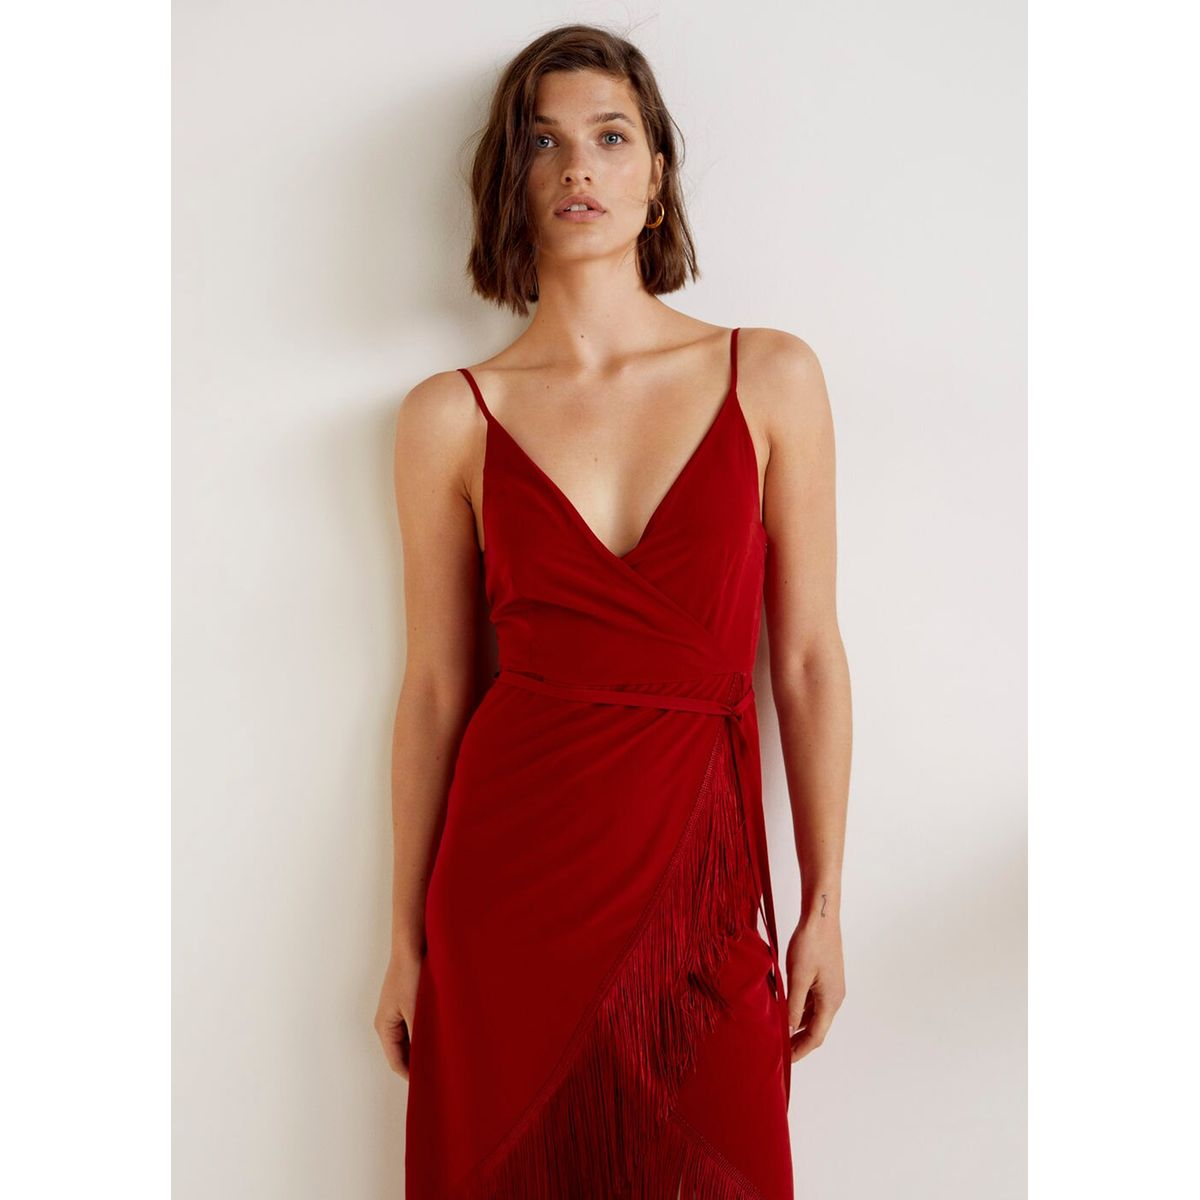 Robe A Franges Taille L Robe A Franges Idees Vestimentaires Robe